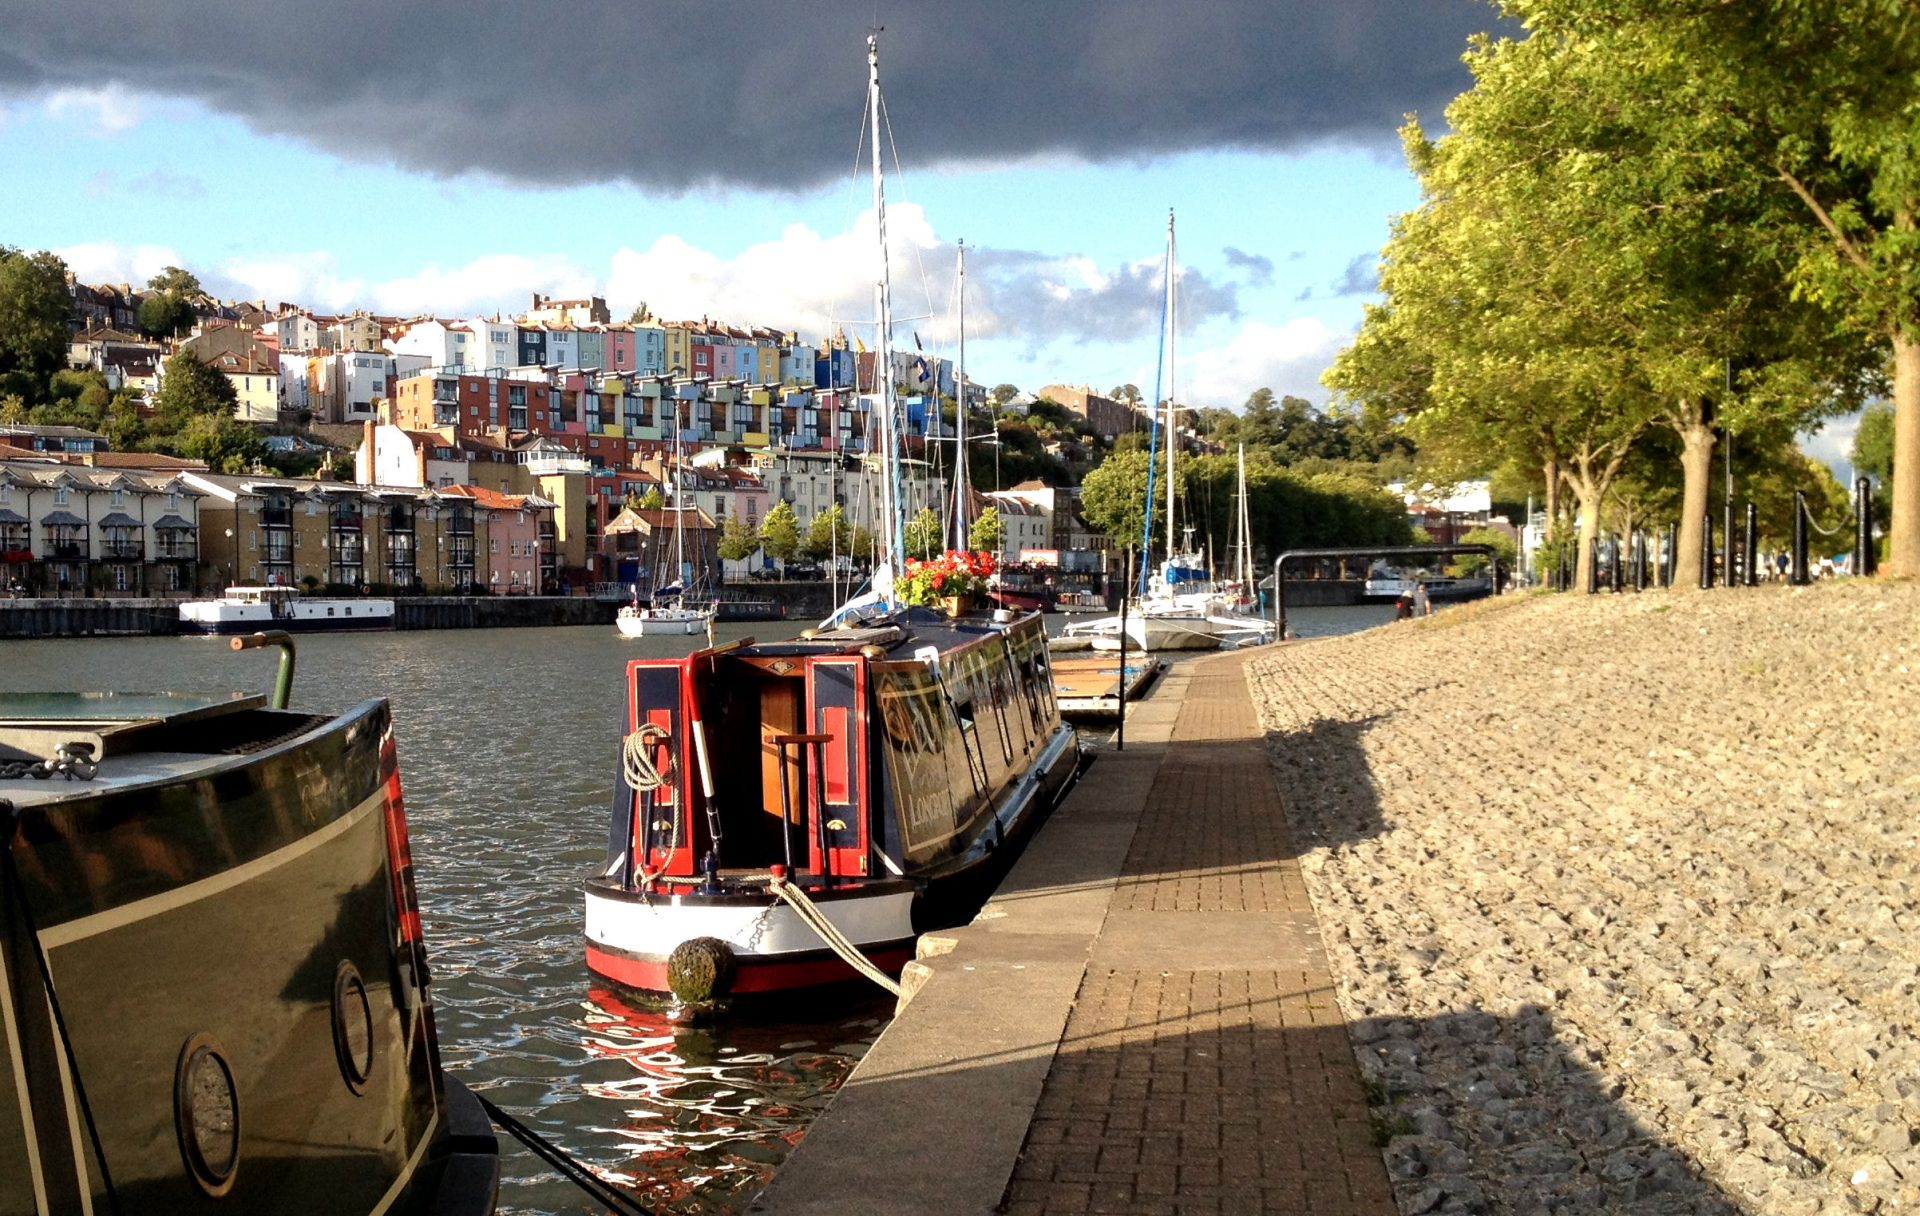 In Bristol for a few days. This is a quieter end to moor than by the shops and cafes.